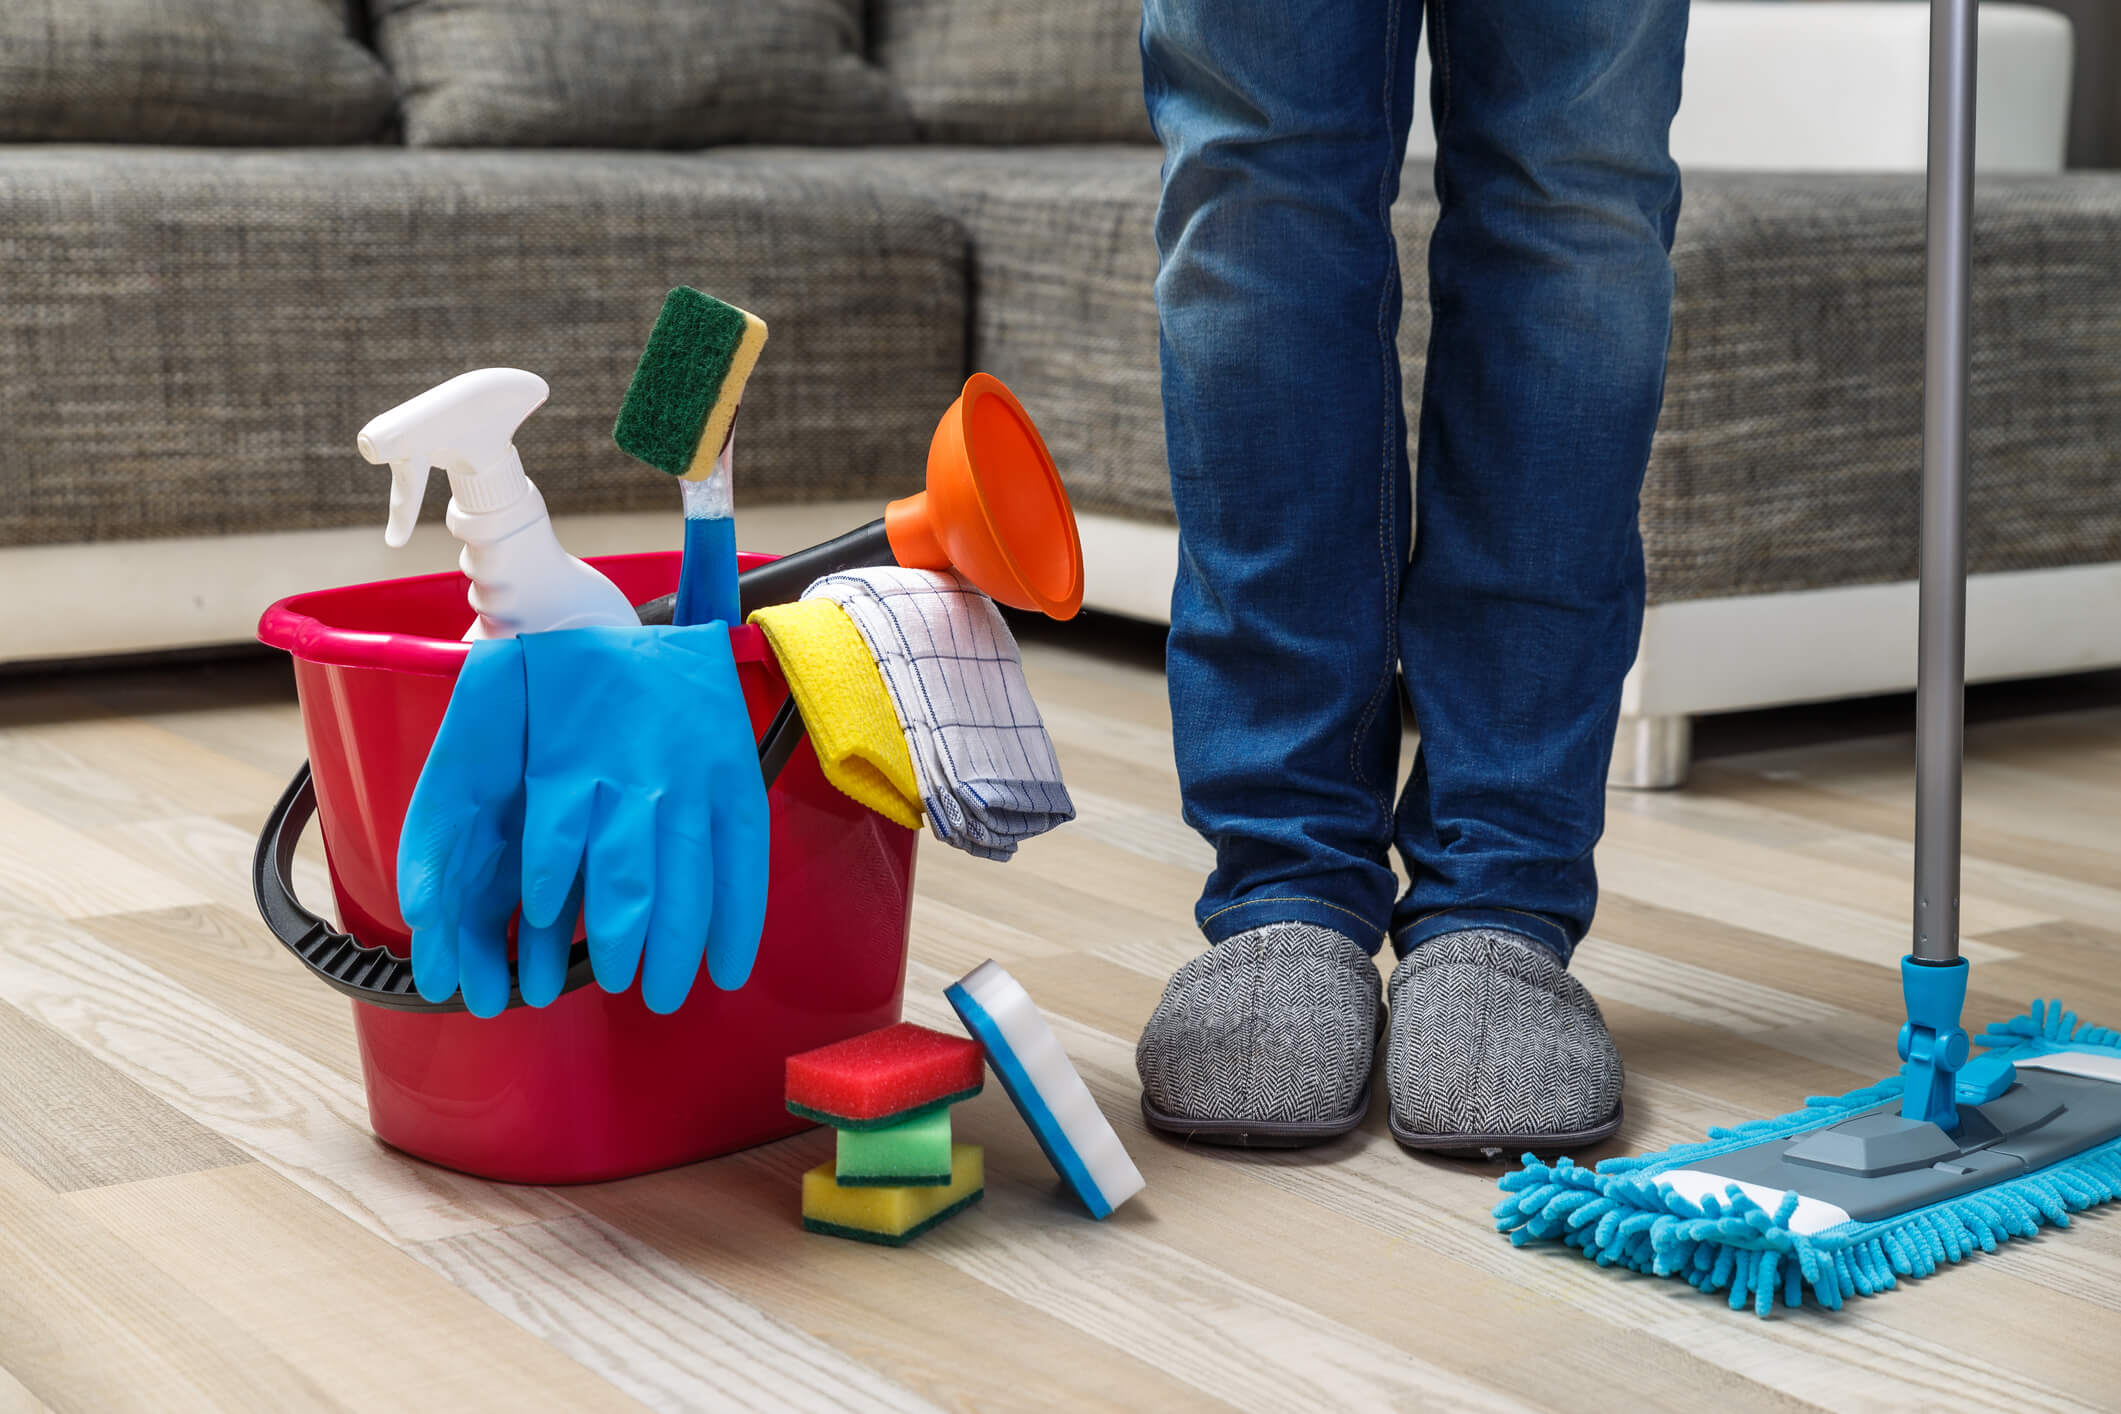 Maids in Bliss Cleaning Service